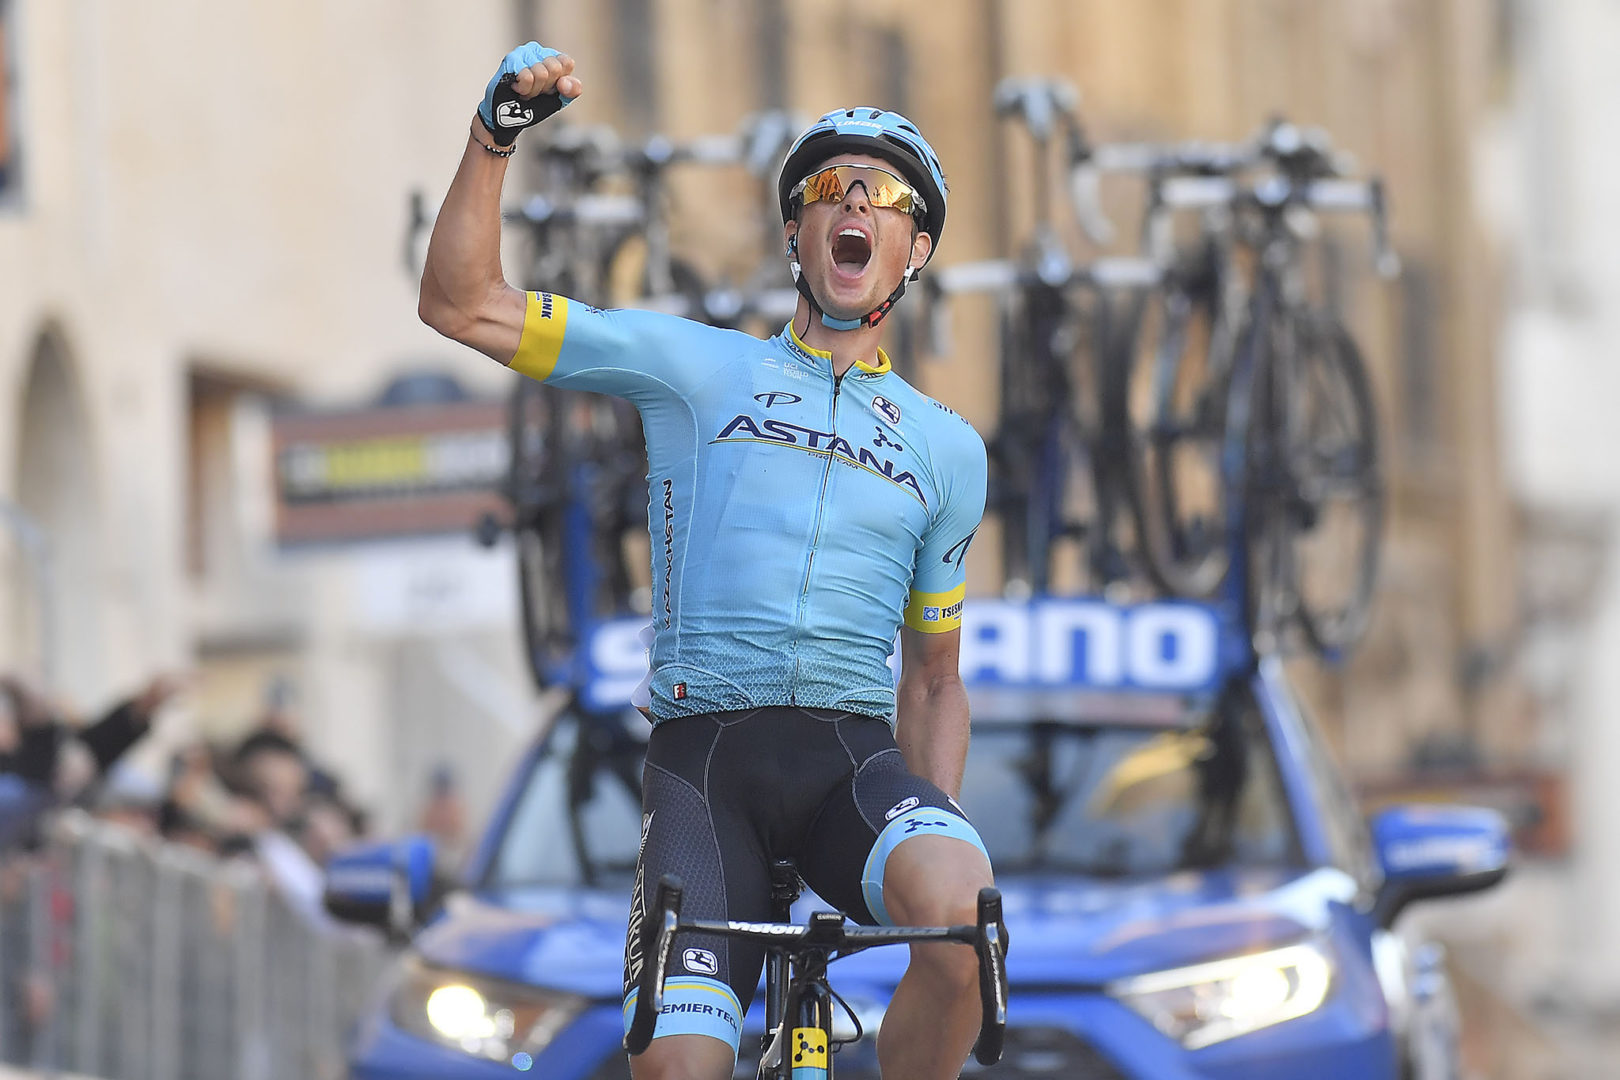 Foto LaPresse/Fabio Ferrari 17/03/2019 Colli al Matauro (Italia) Sport Ciclismo Tirreno-Adriatico 2019 - edizione 54 - da Colli al Metauro a Recanati (180 km) Nella foto: FUGLSANG Jakob (Astana) vincitore di tappaPhoto LaPresse/Fabio Ferrari March 17, 2018 Colli al Matauro (Italy) Sport Cycling Tirreno-Adriatico 2019 - edition 54 - Colli al Metauro a Recanati (111 miglia) In the pic: FUGLSANG Jakob (Astana)  winner of race